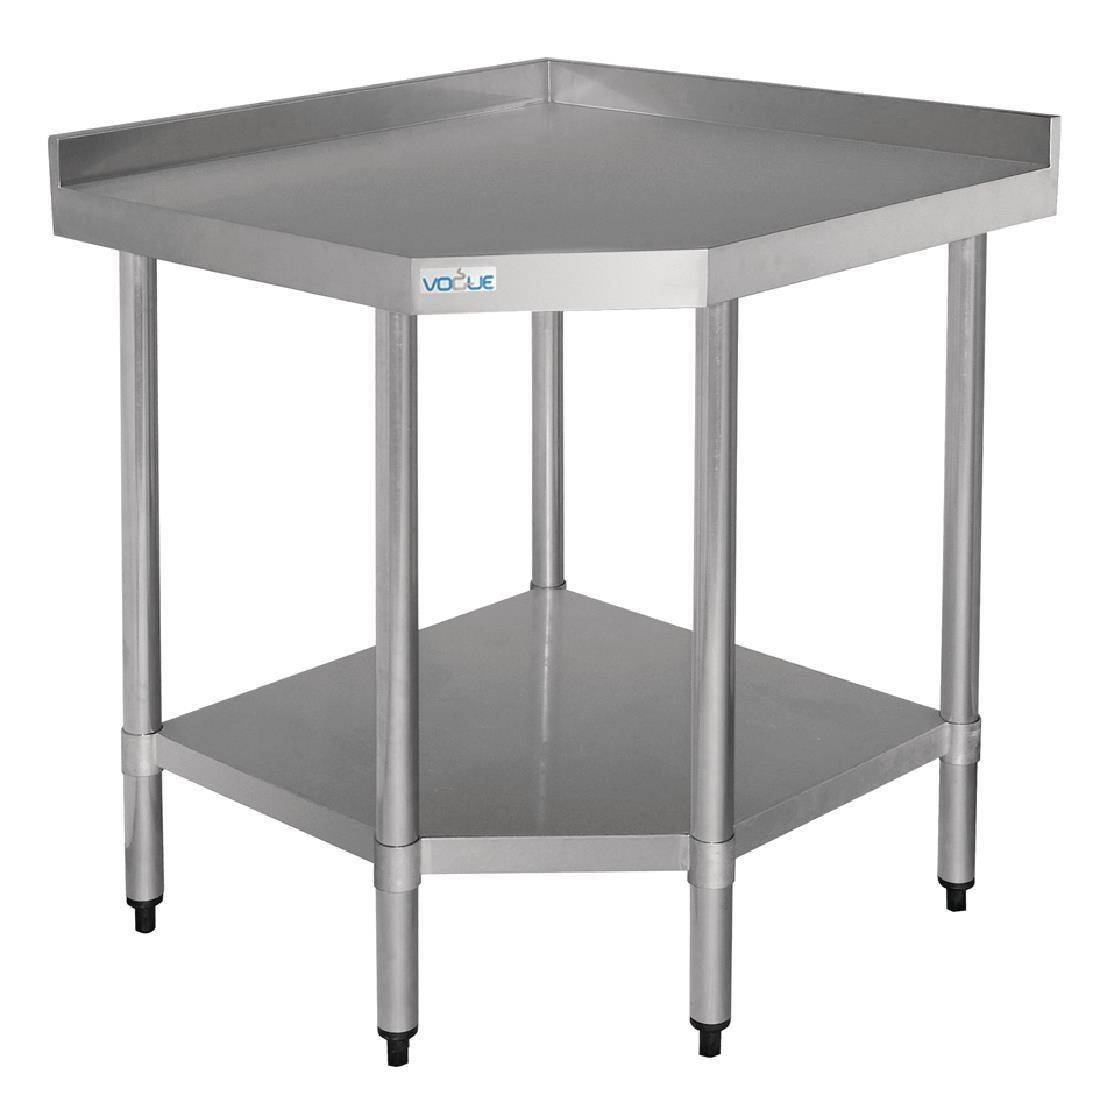 Vogue Stainless Steel Corner Table 700mm - Each - GL278